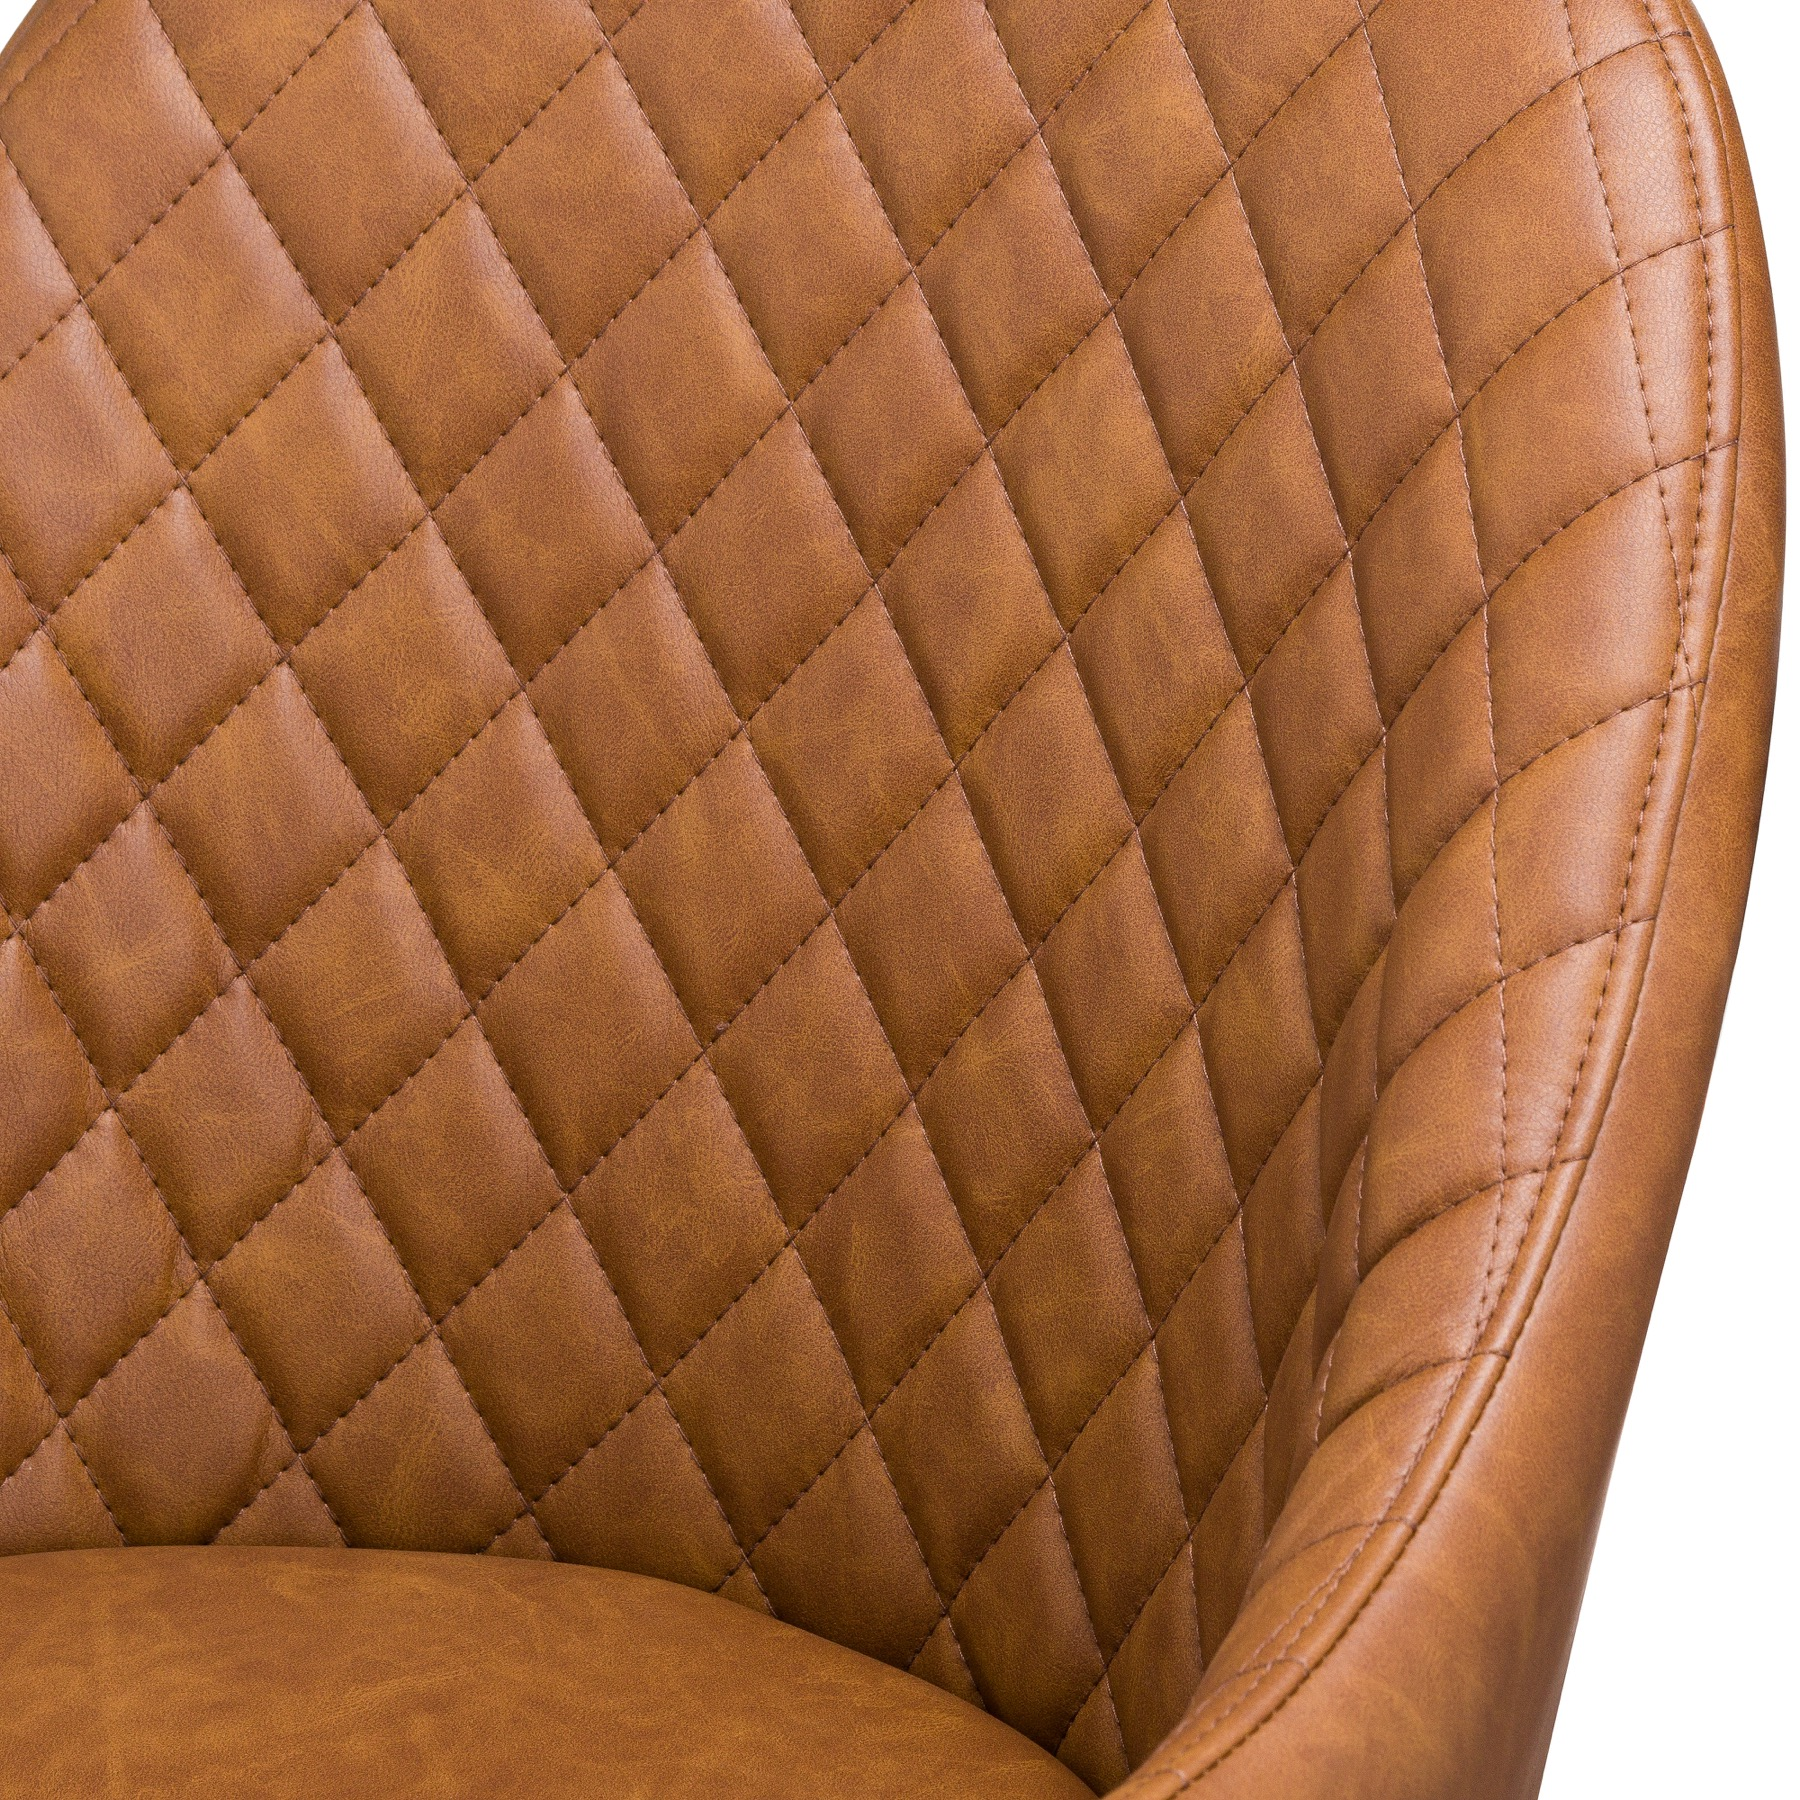 Stockholme Chequered Tan Dining Chair - Image 2